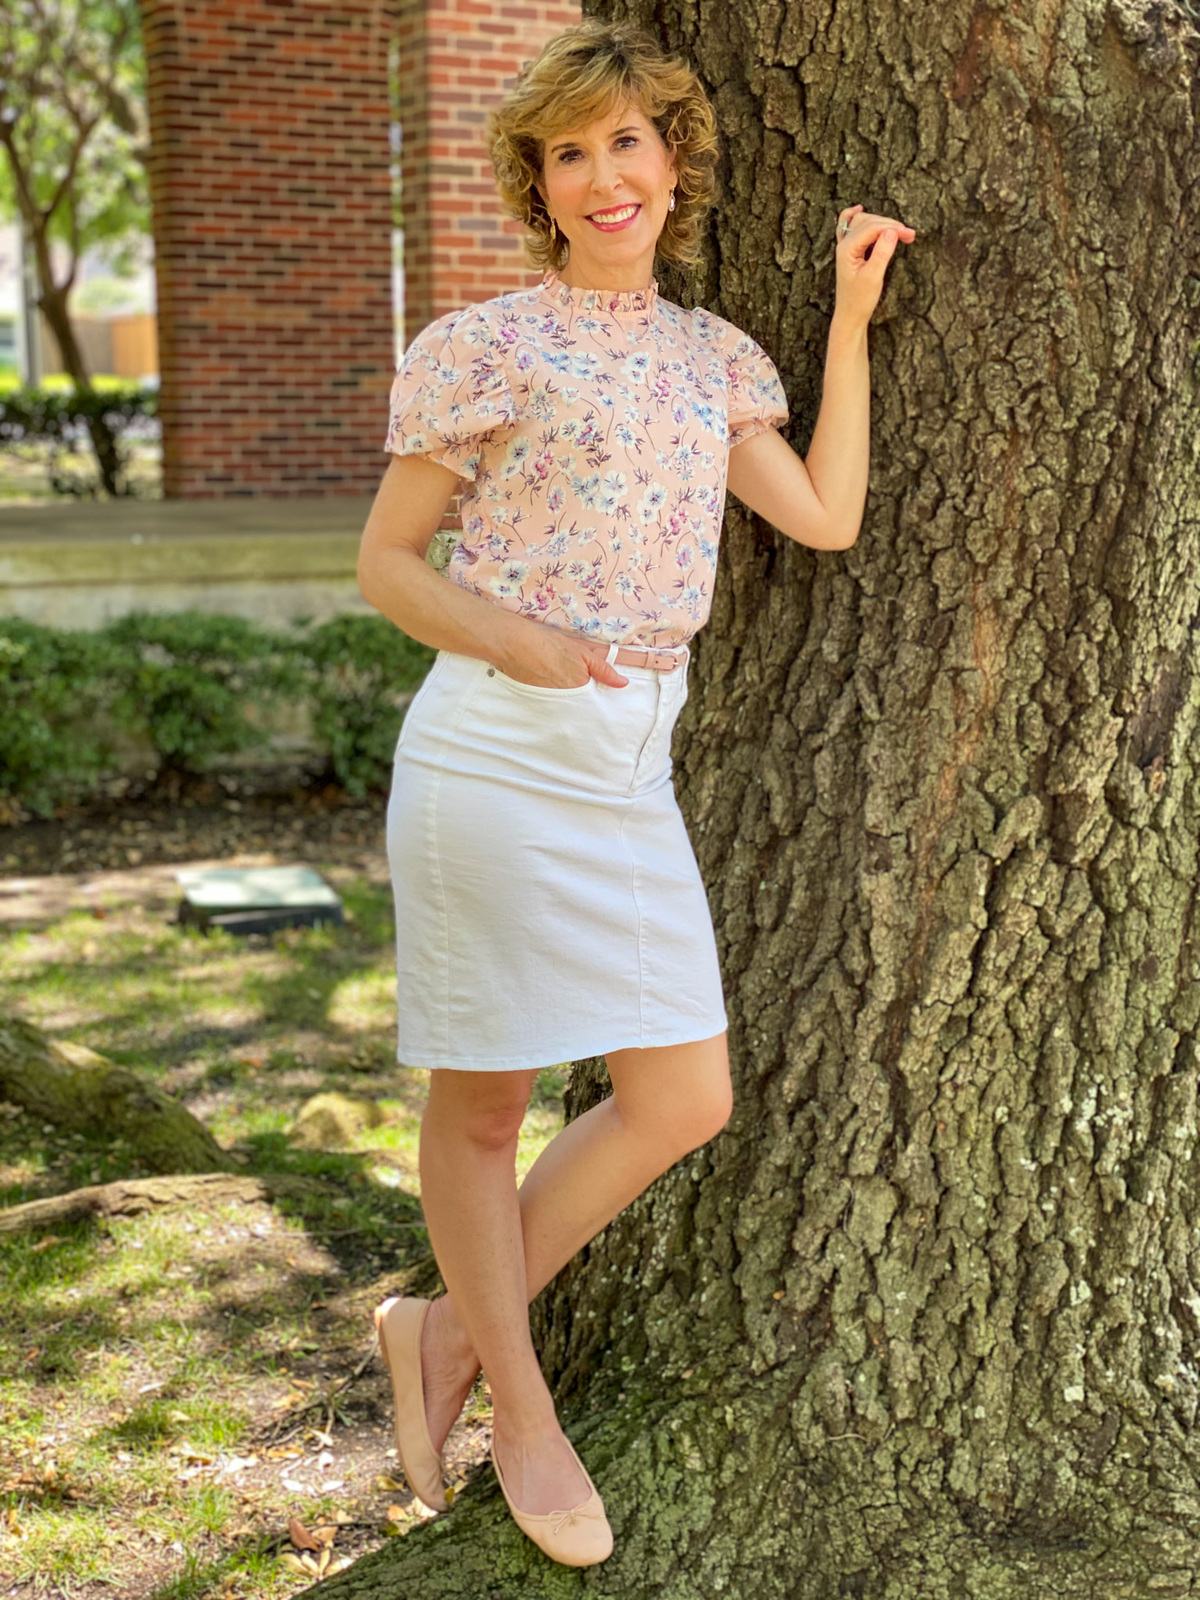 empty nester in pink floral top and white skirt standing by a tree thinking about her purpose as an empty nester